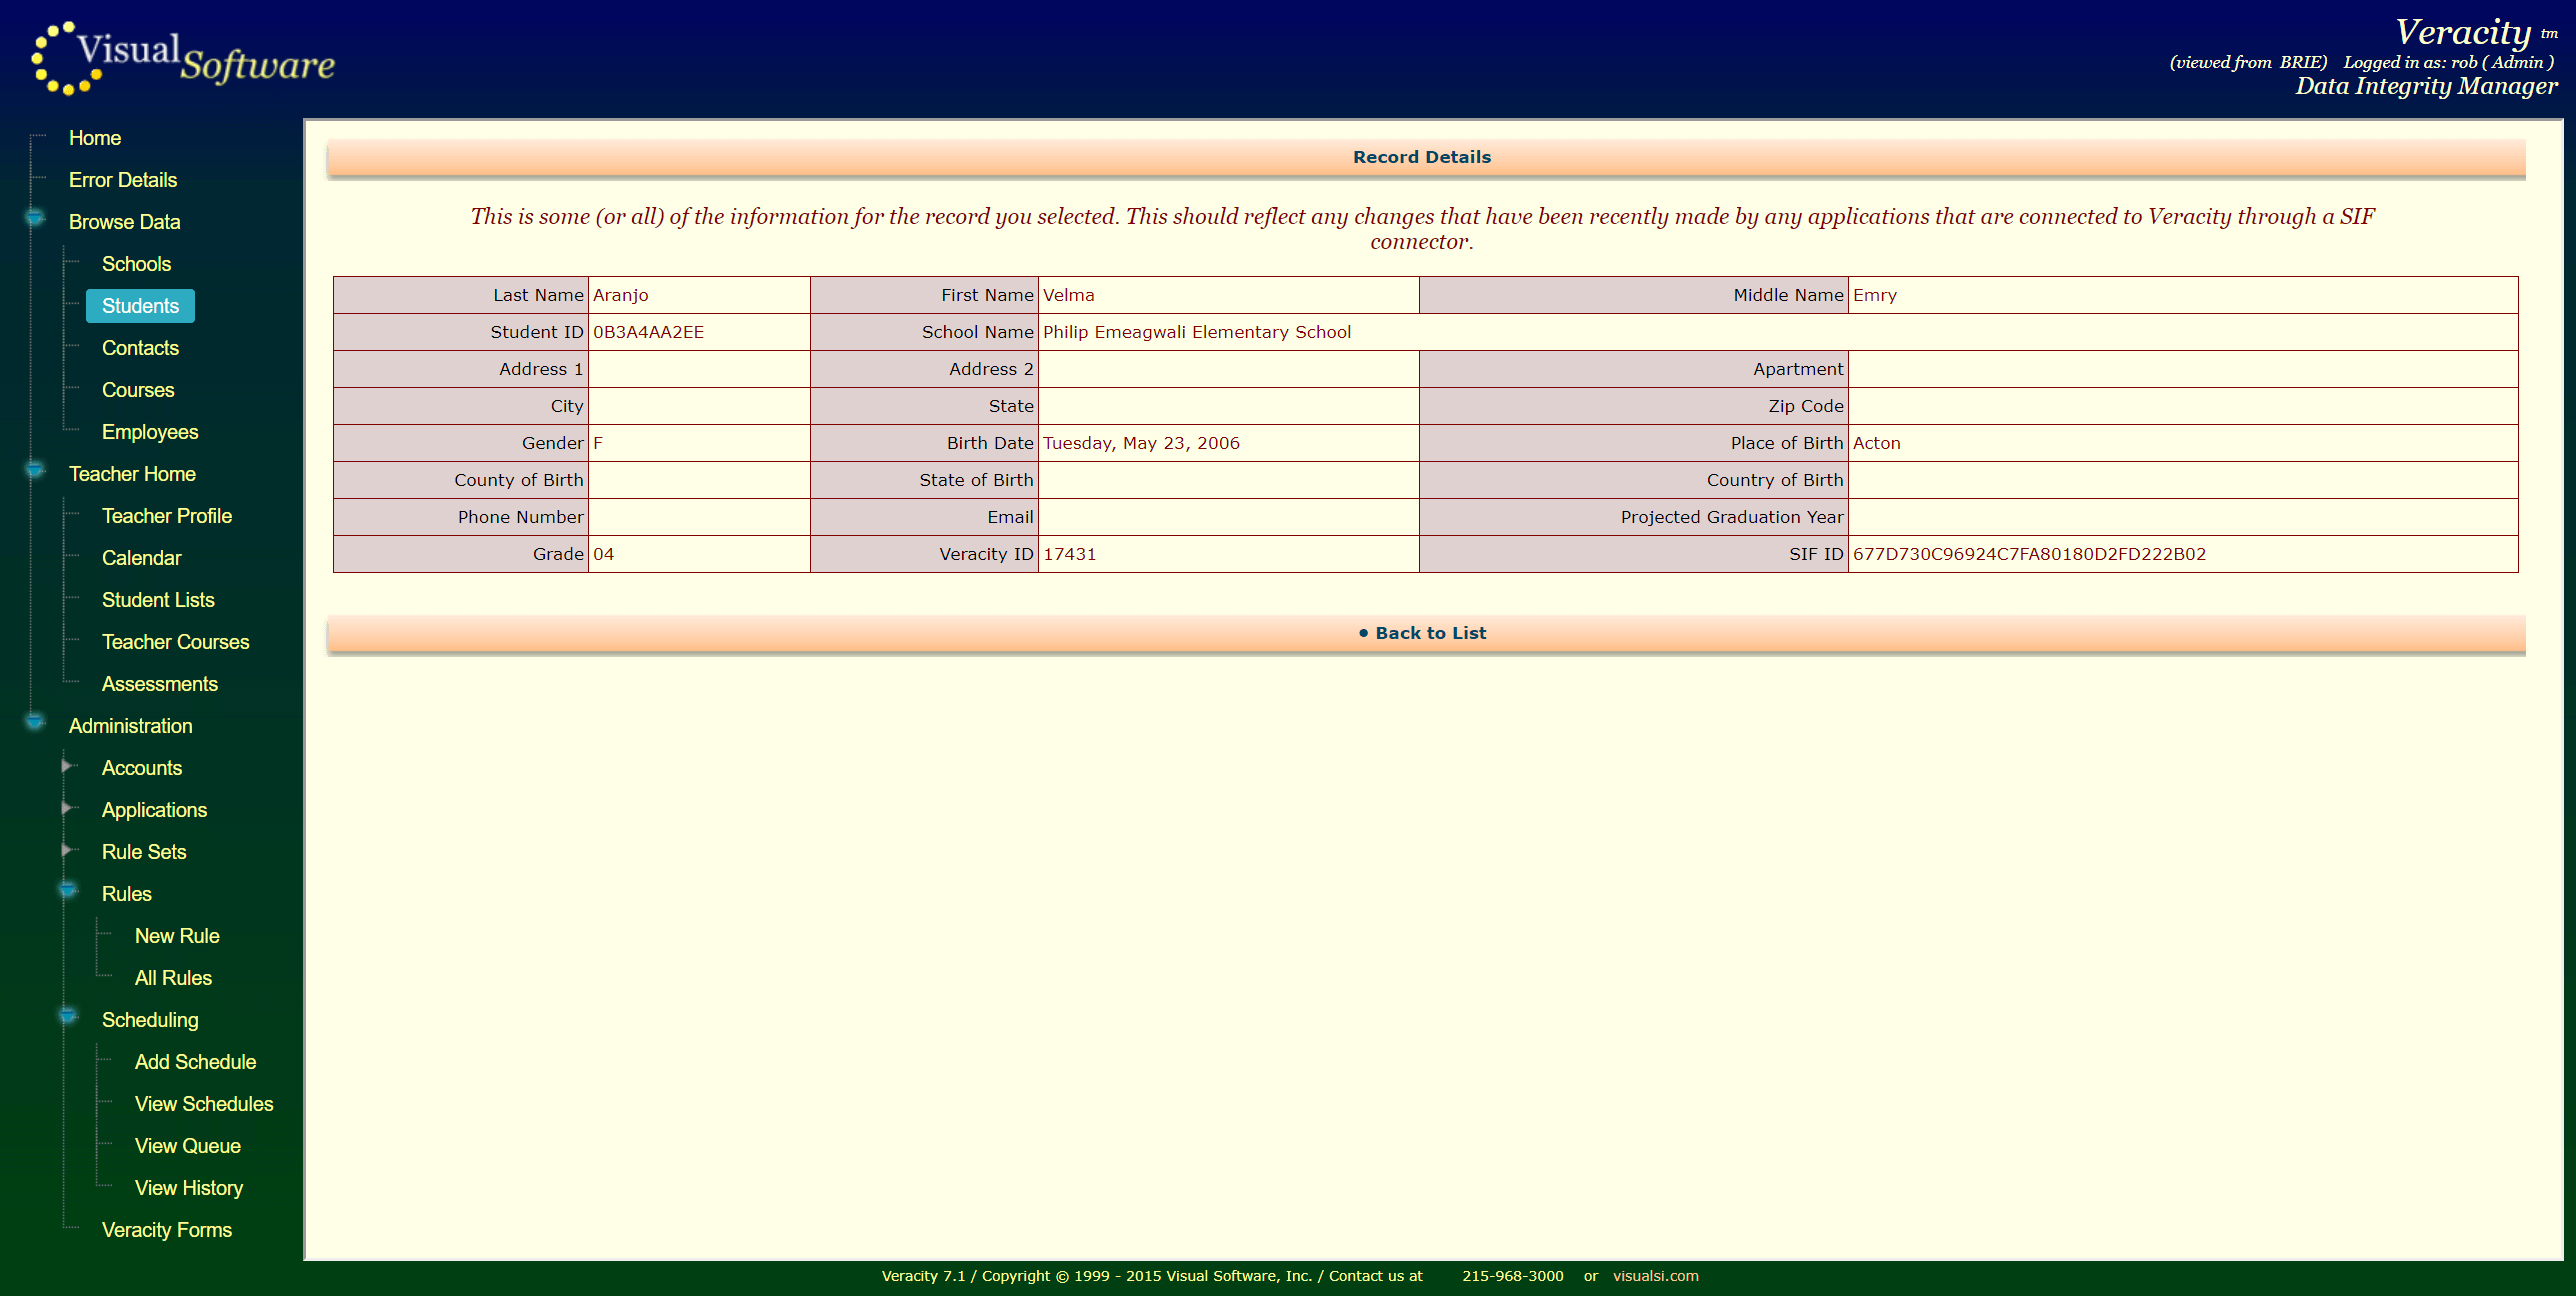 VeracityForms04 - Veracity - Consolidation Agent and Integrity Manager